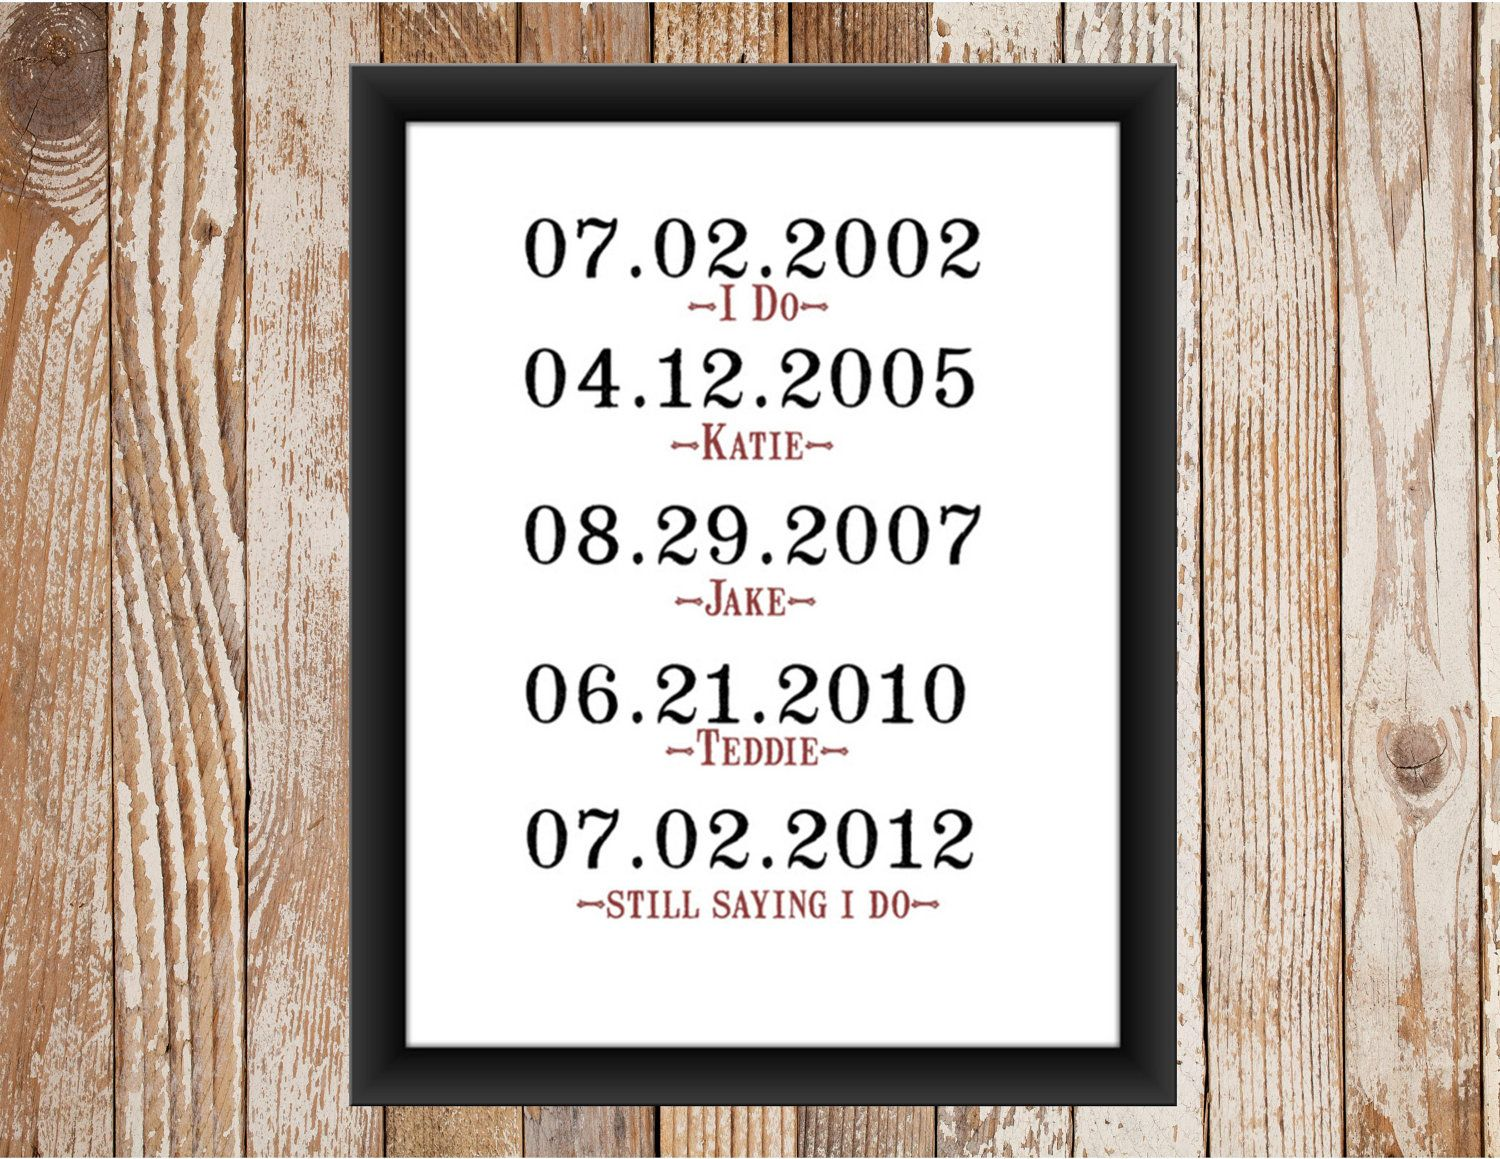 Wedding Renewal Gifts: What A Difference A Day Makes Vow Renewal Print. $12.00